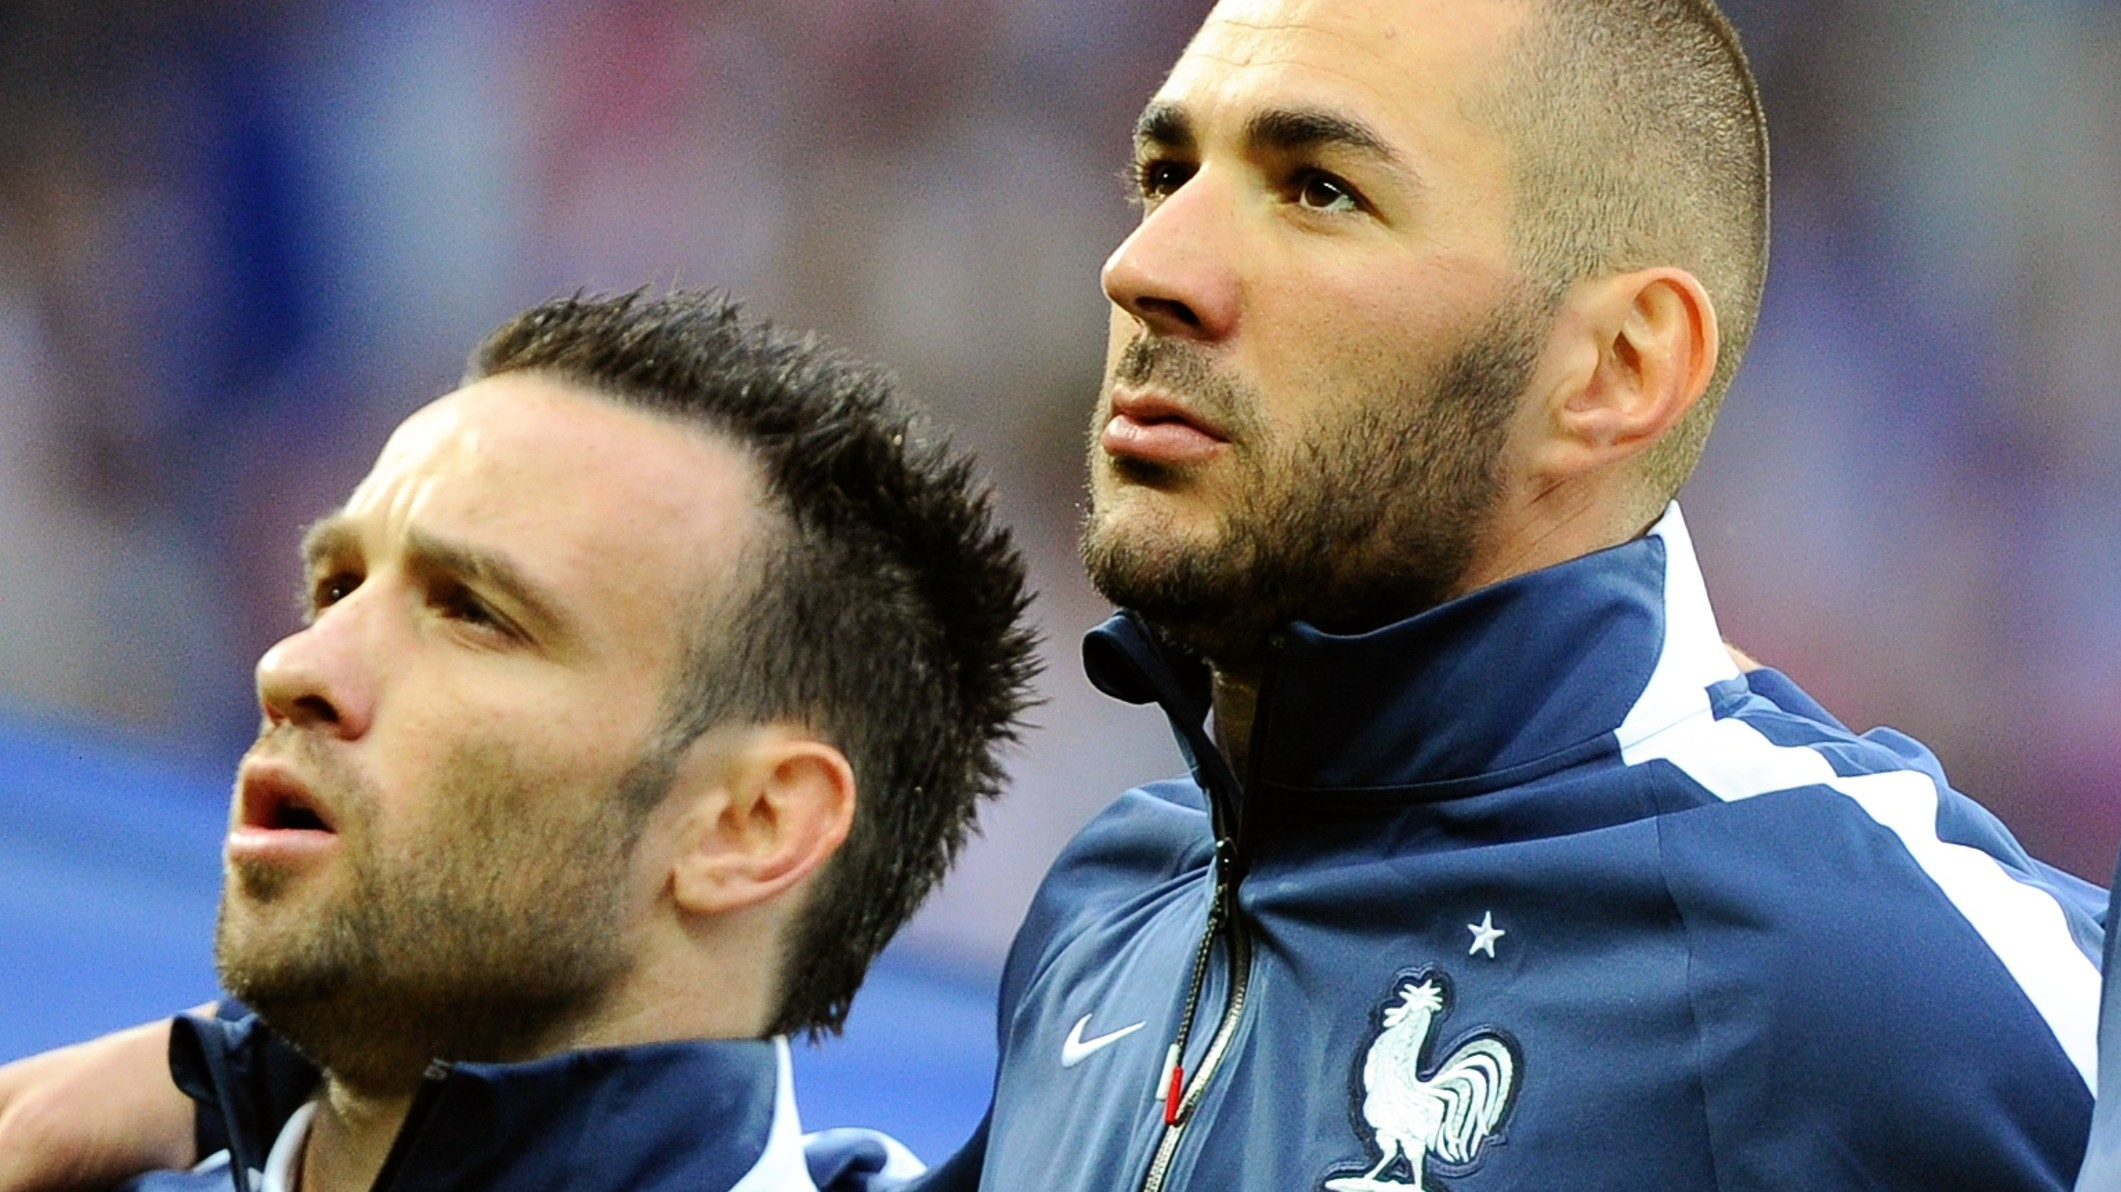 Mathieu Valbuena and Karim Benzema and Oliver Giroud, French national soccer team